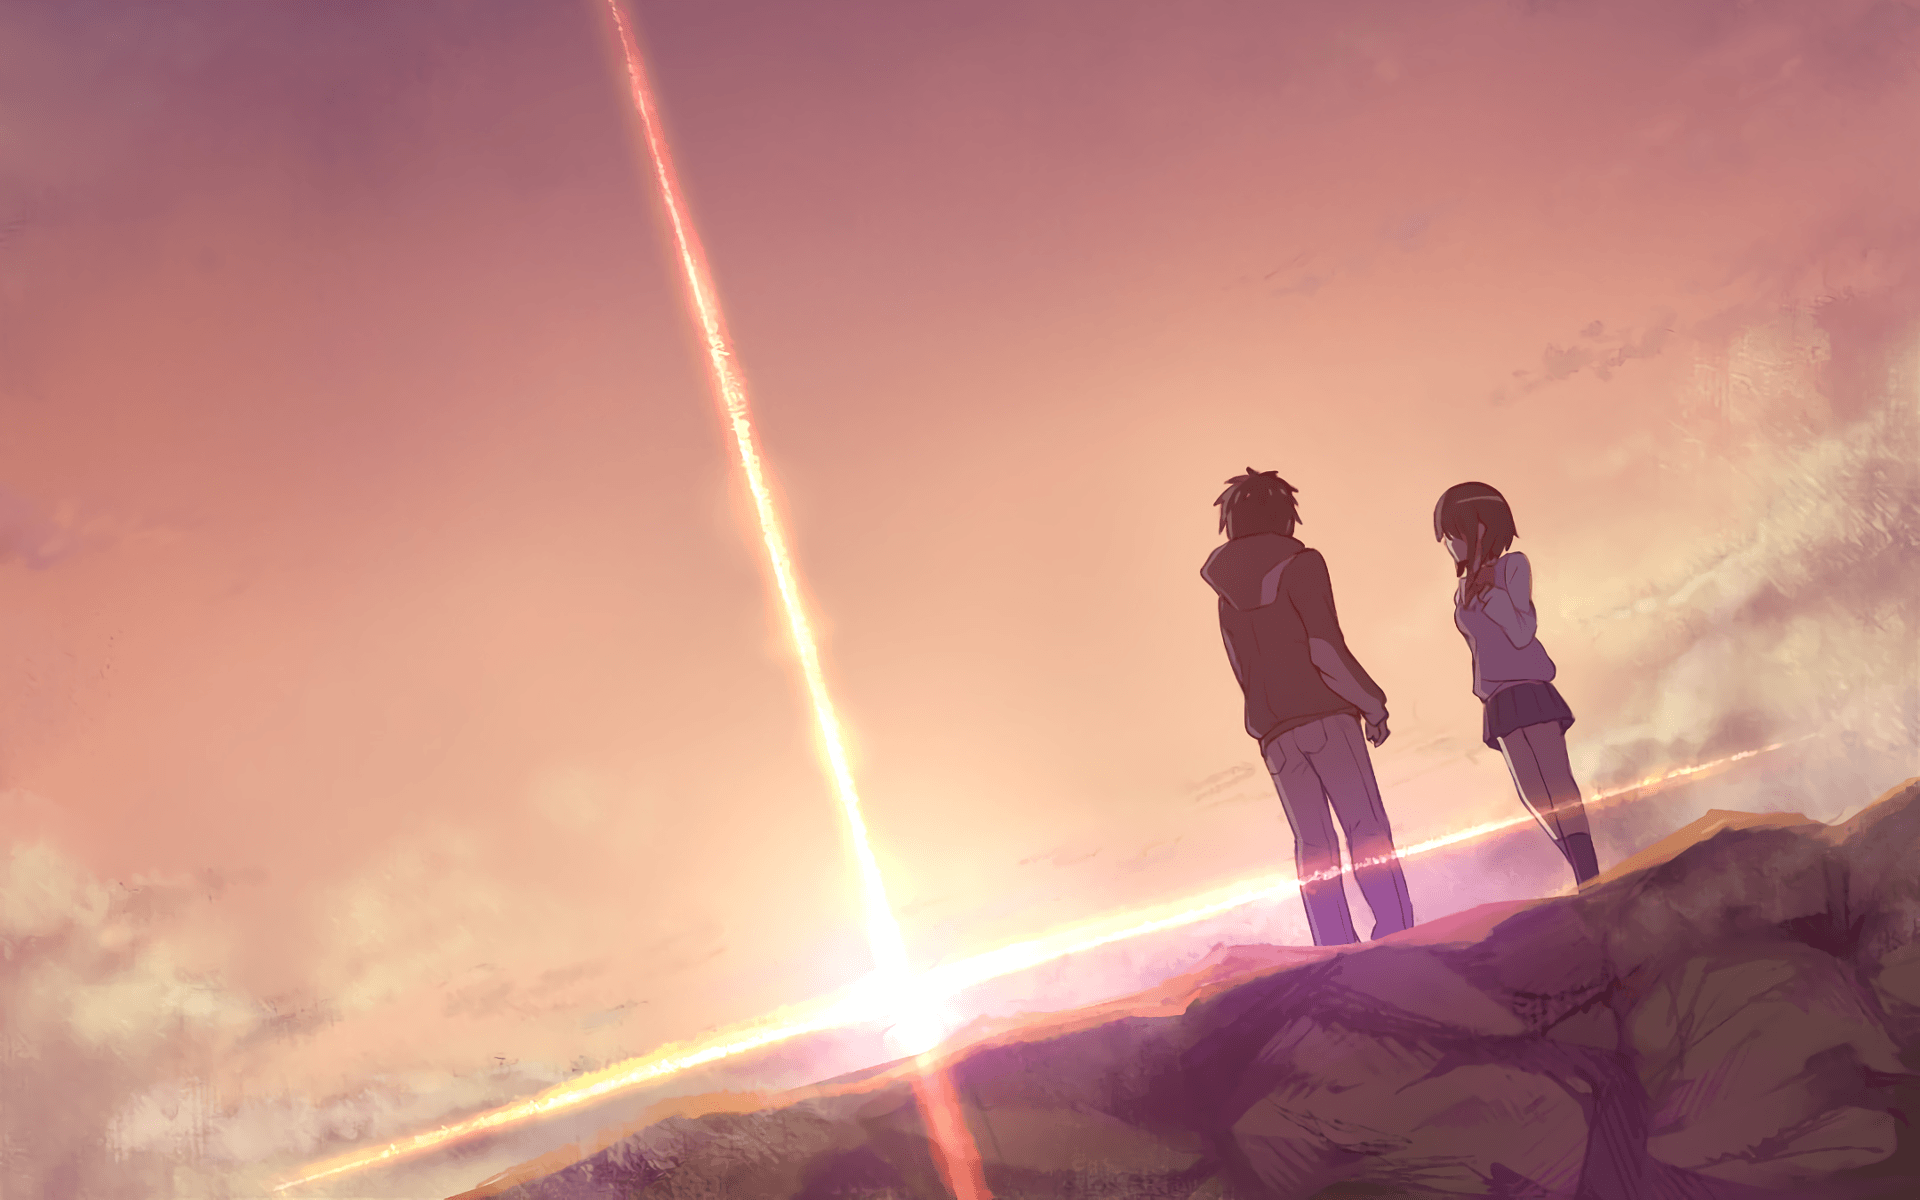 Anime Wallpapers Kimi No Nawa Hd 4k Download For Mobile Iphone